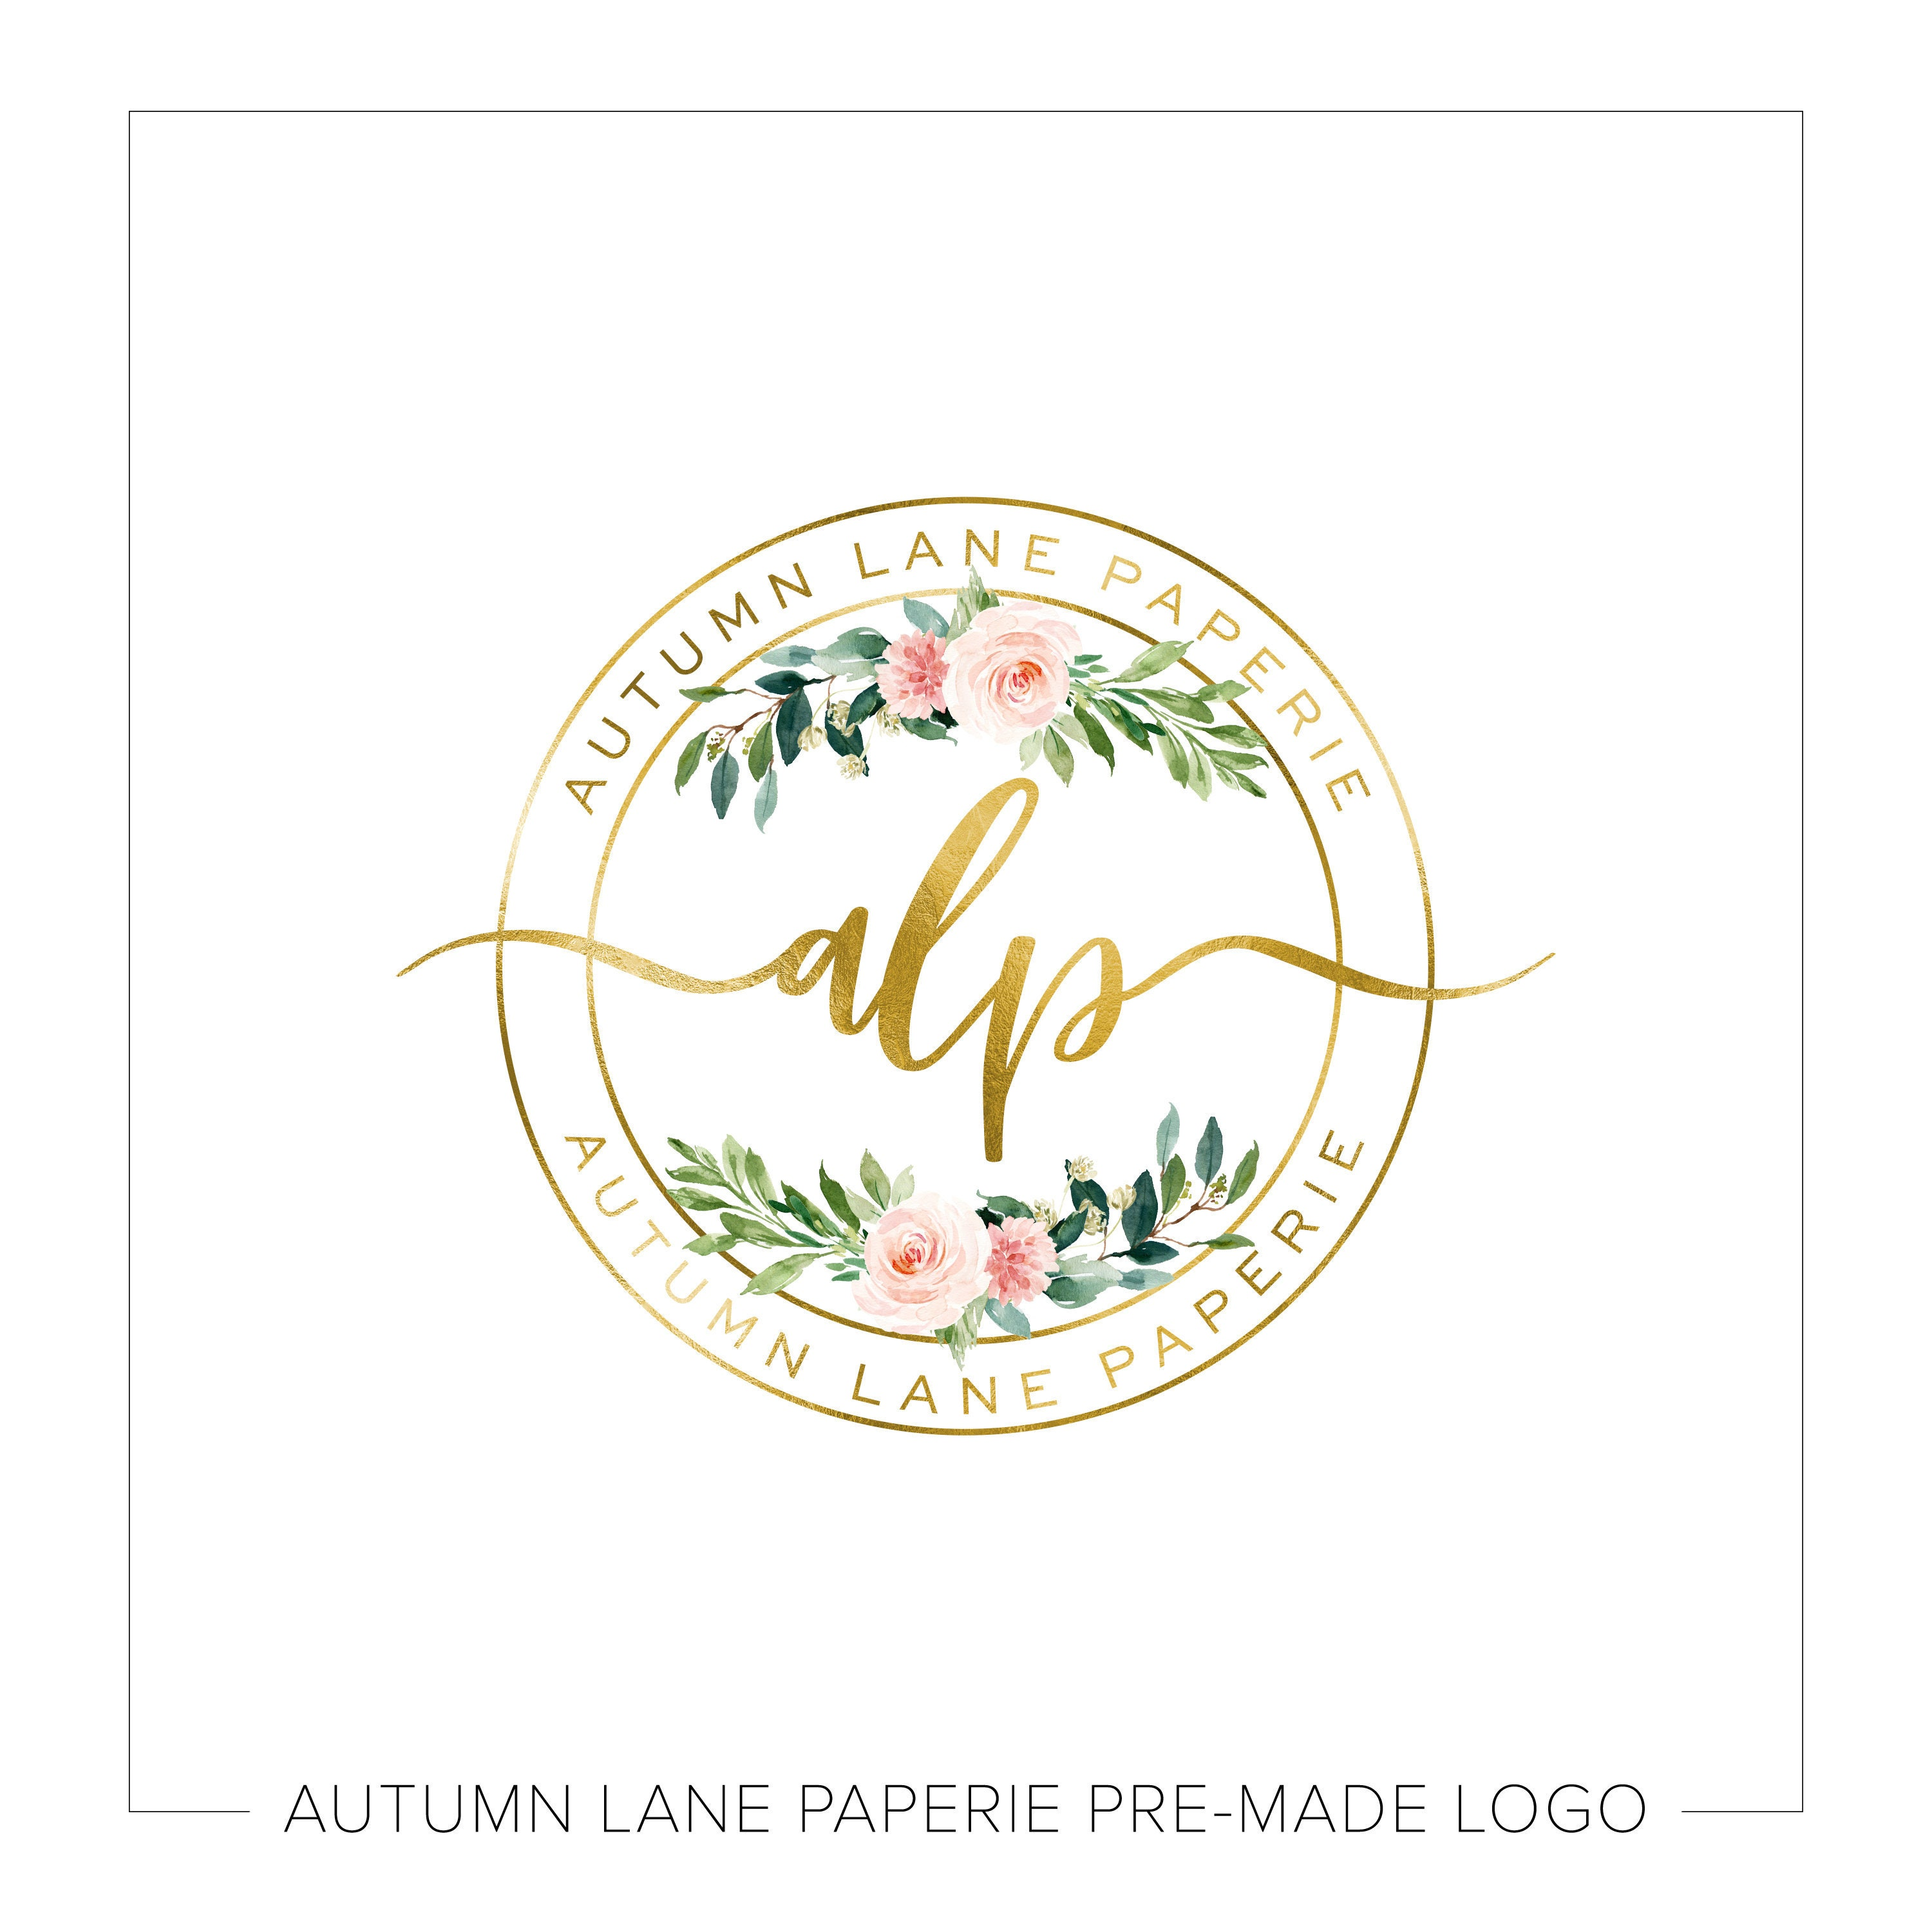 premade logo design watermark logo website logo business logo